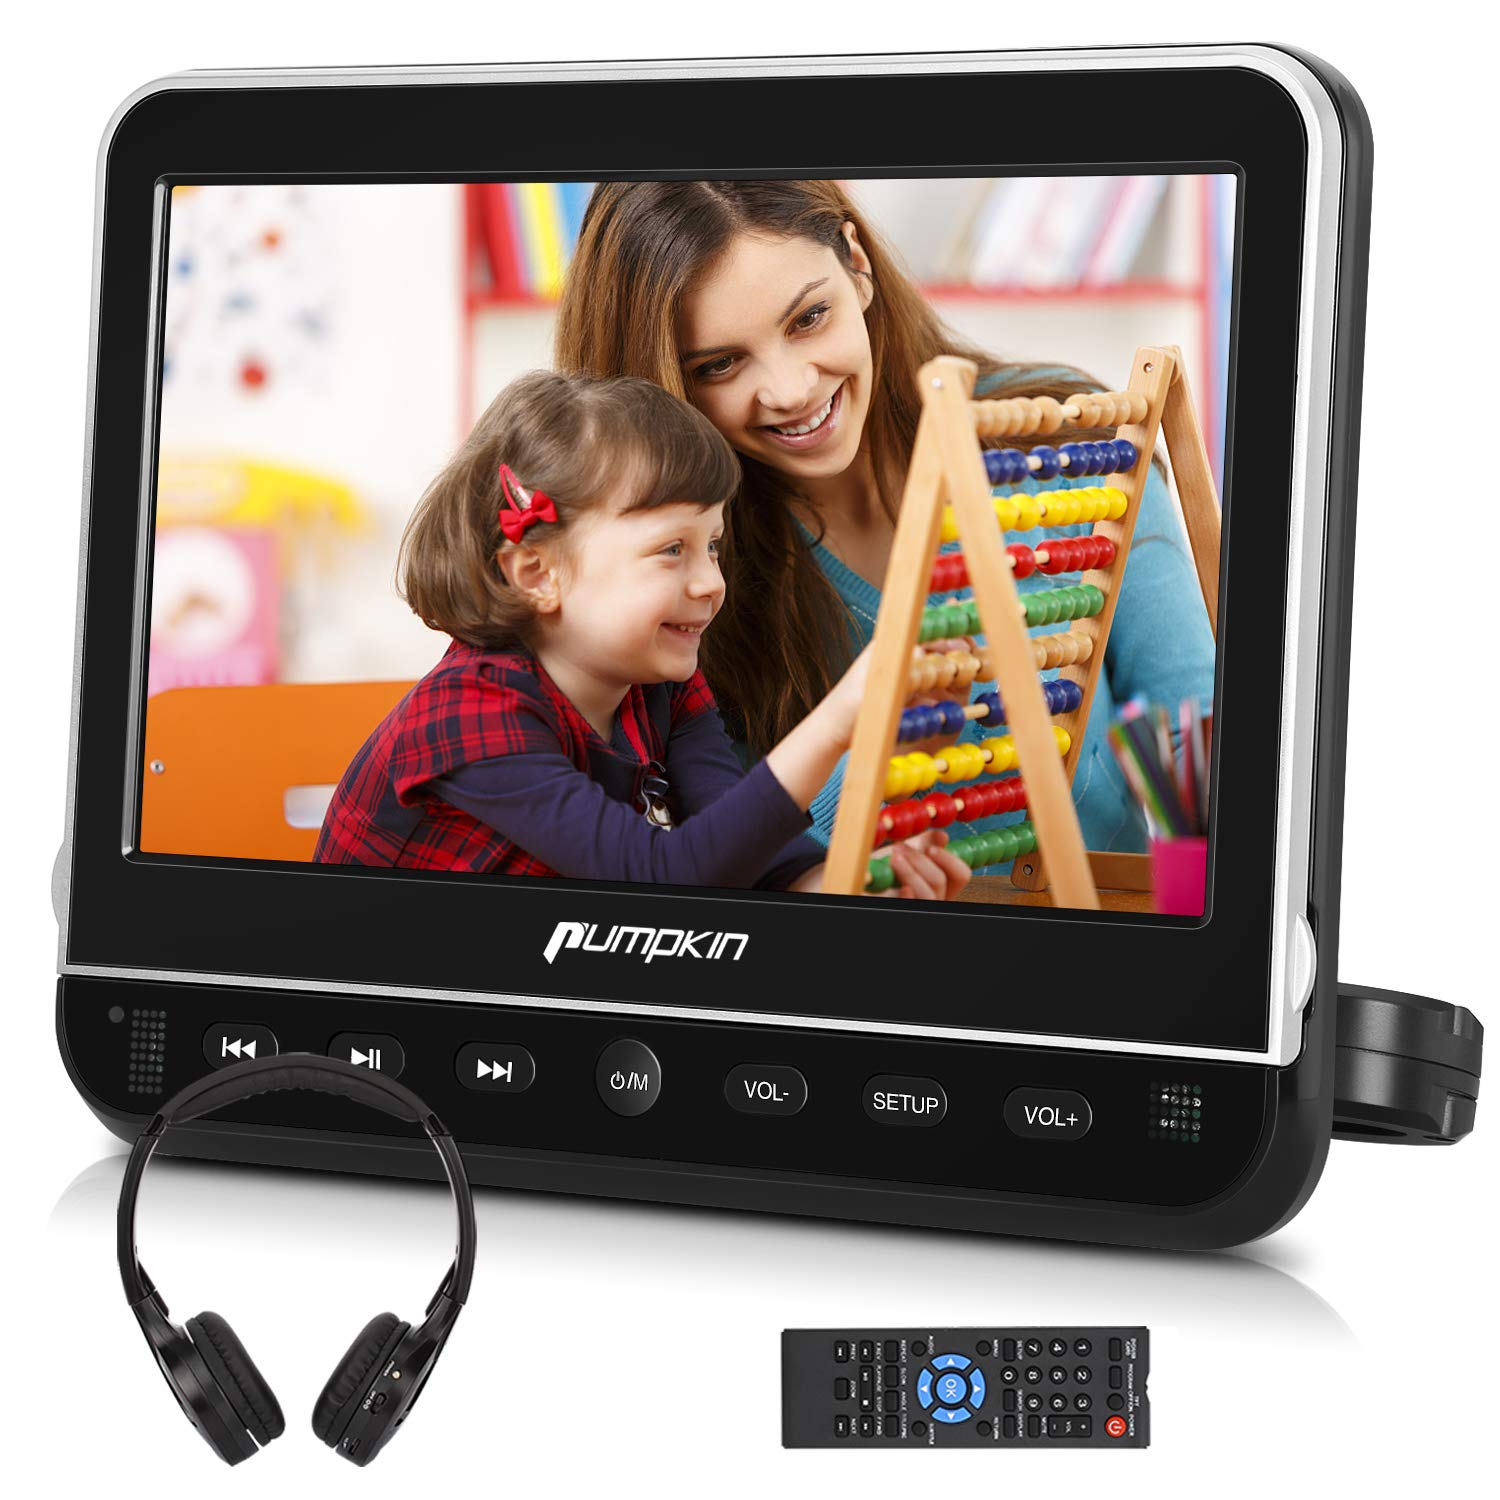 PUMPKIN 10.1 Inch Car Headrest DVD Player with Free Headphone, Support 1080P Video, HDMI Input, AV in Out, Region Free, USB SD